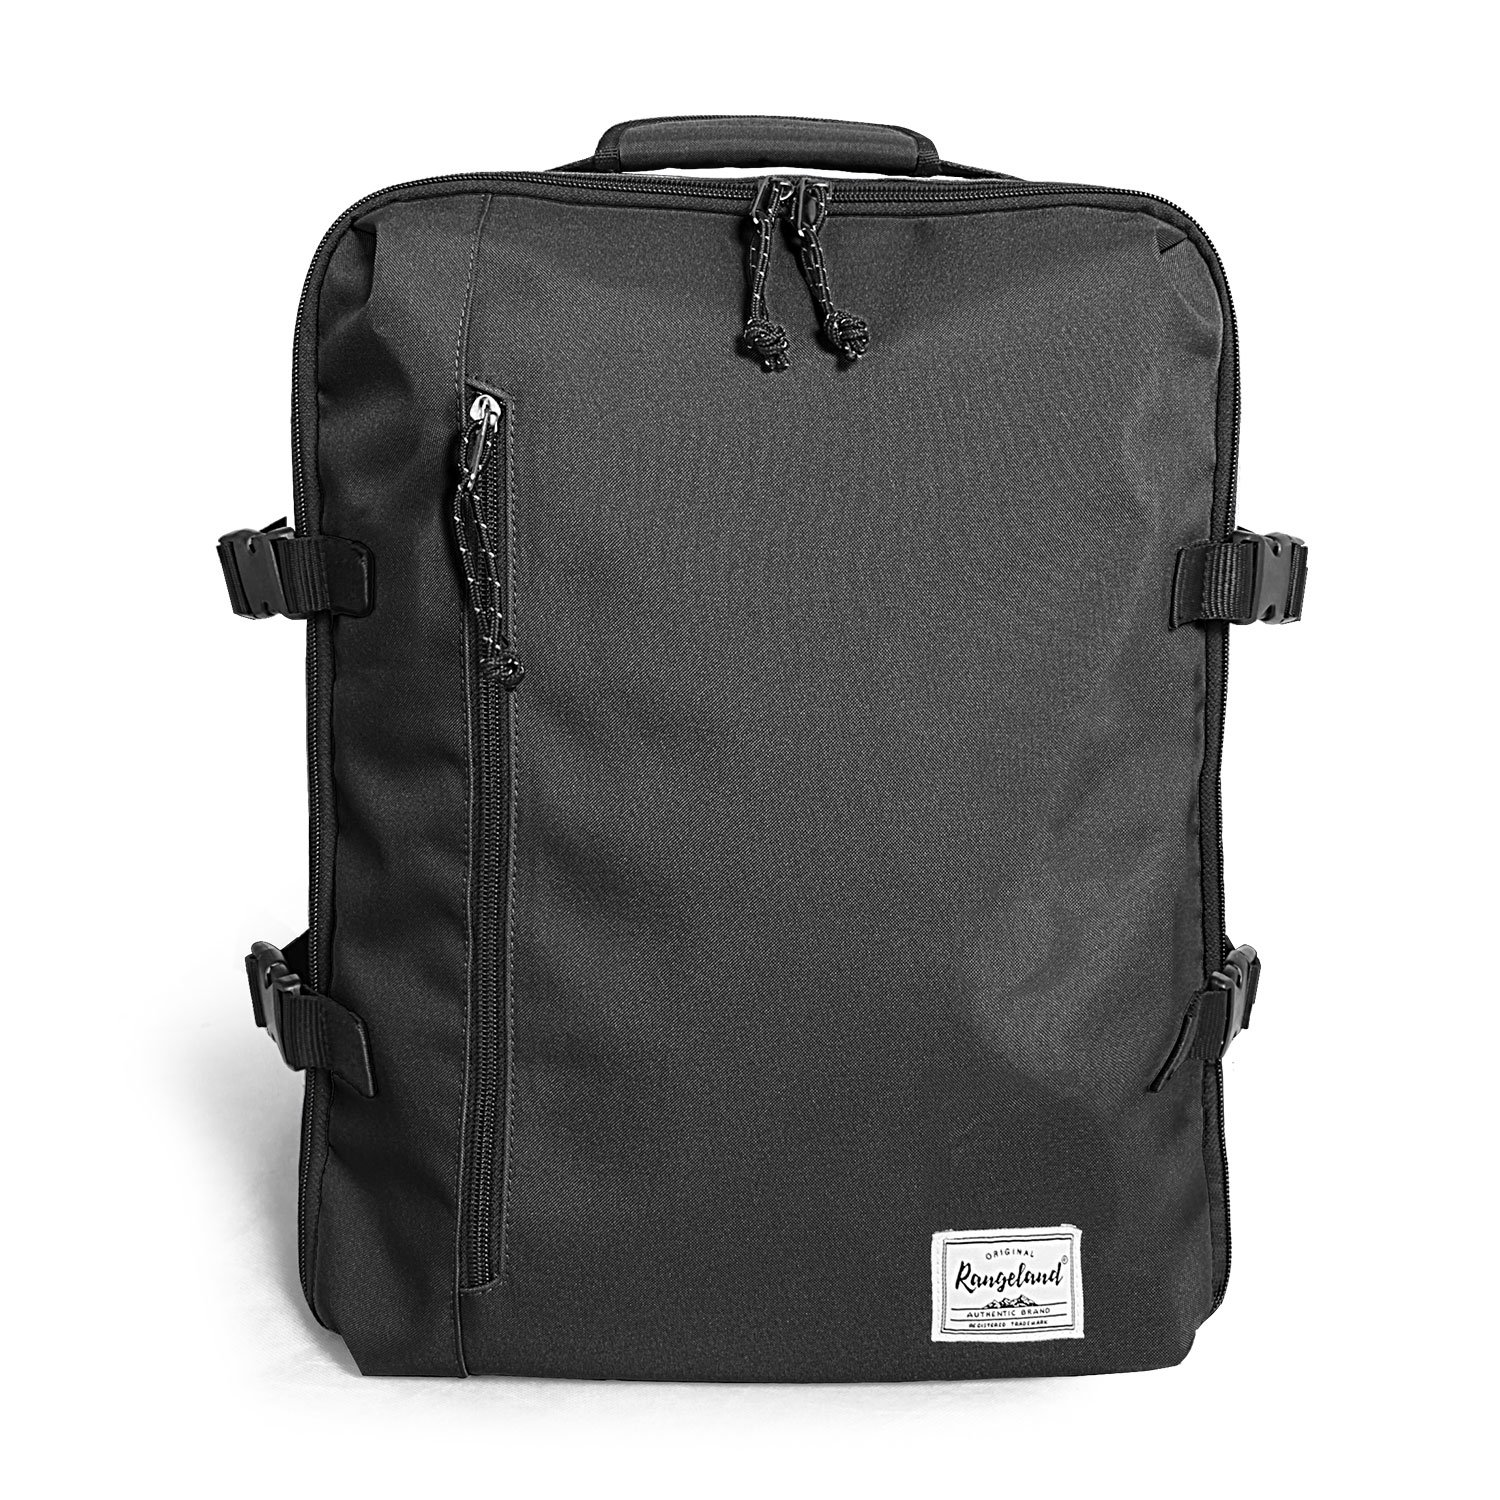 Rangeland 2018 Business Trip Backpack 21L Flight Approved Carry on Daypack for 15 inch Laptop